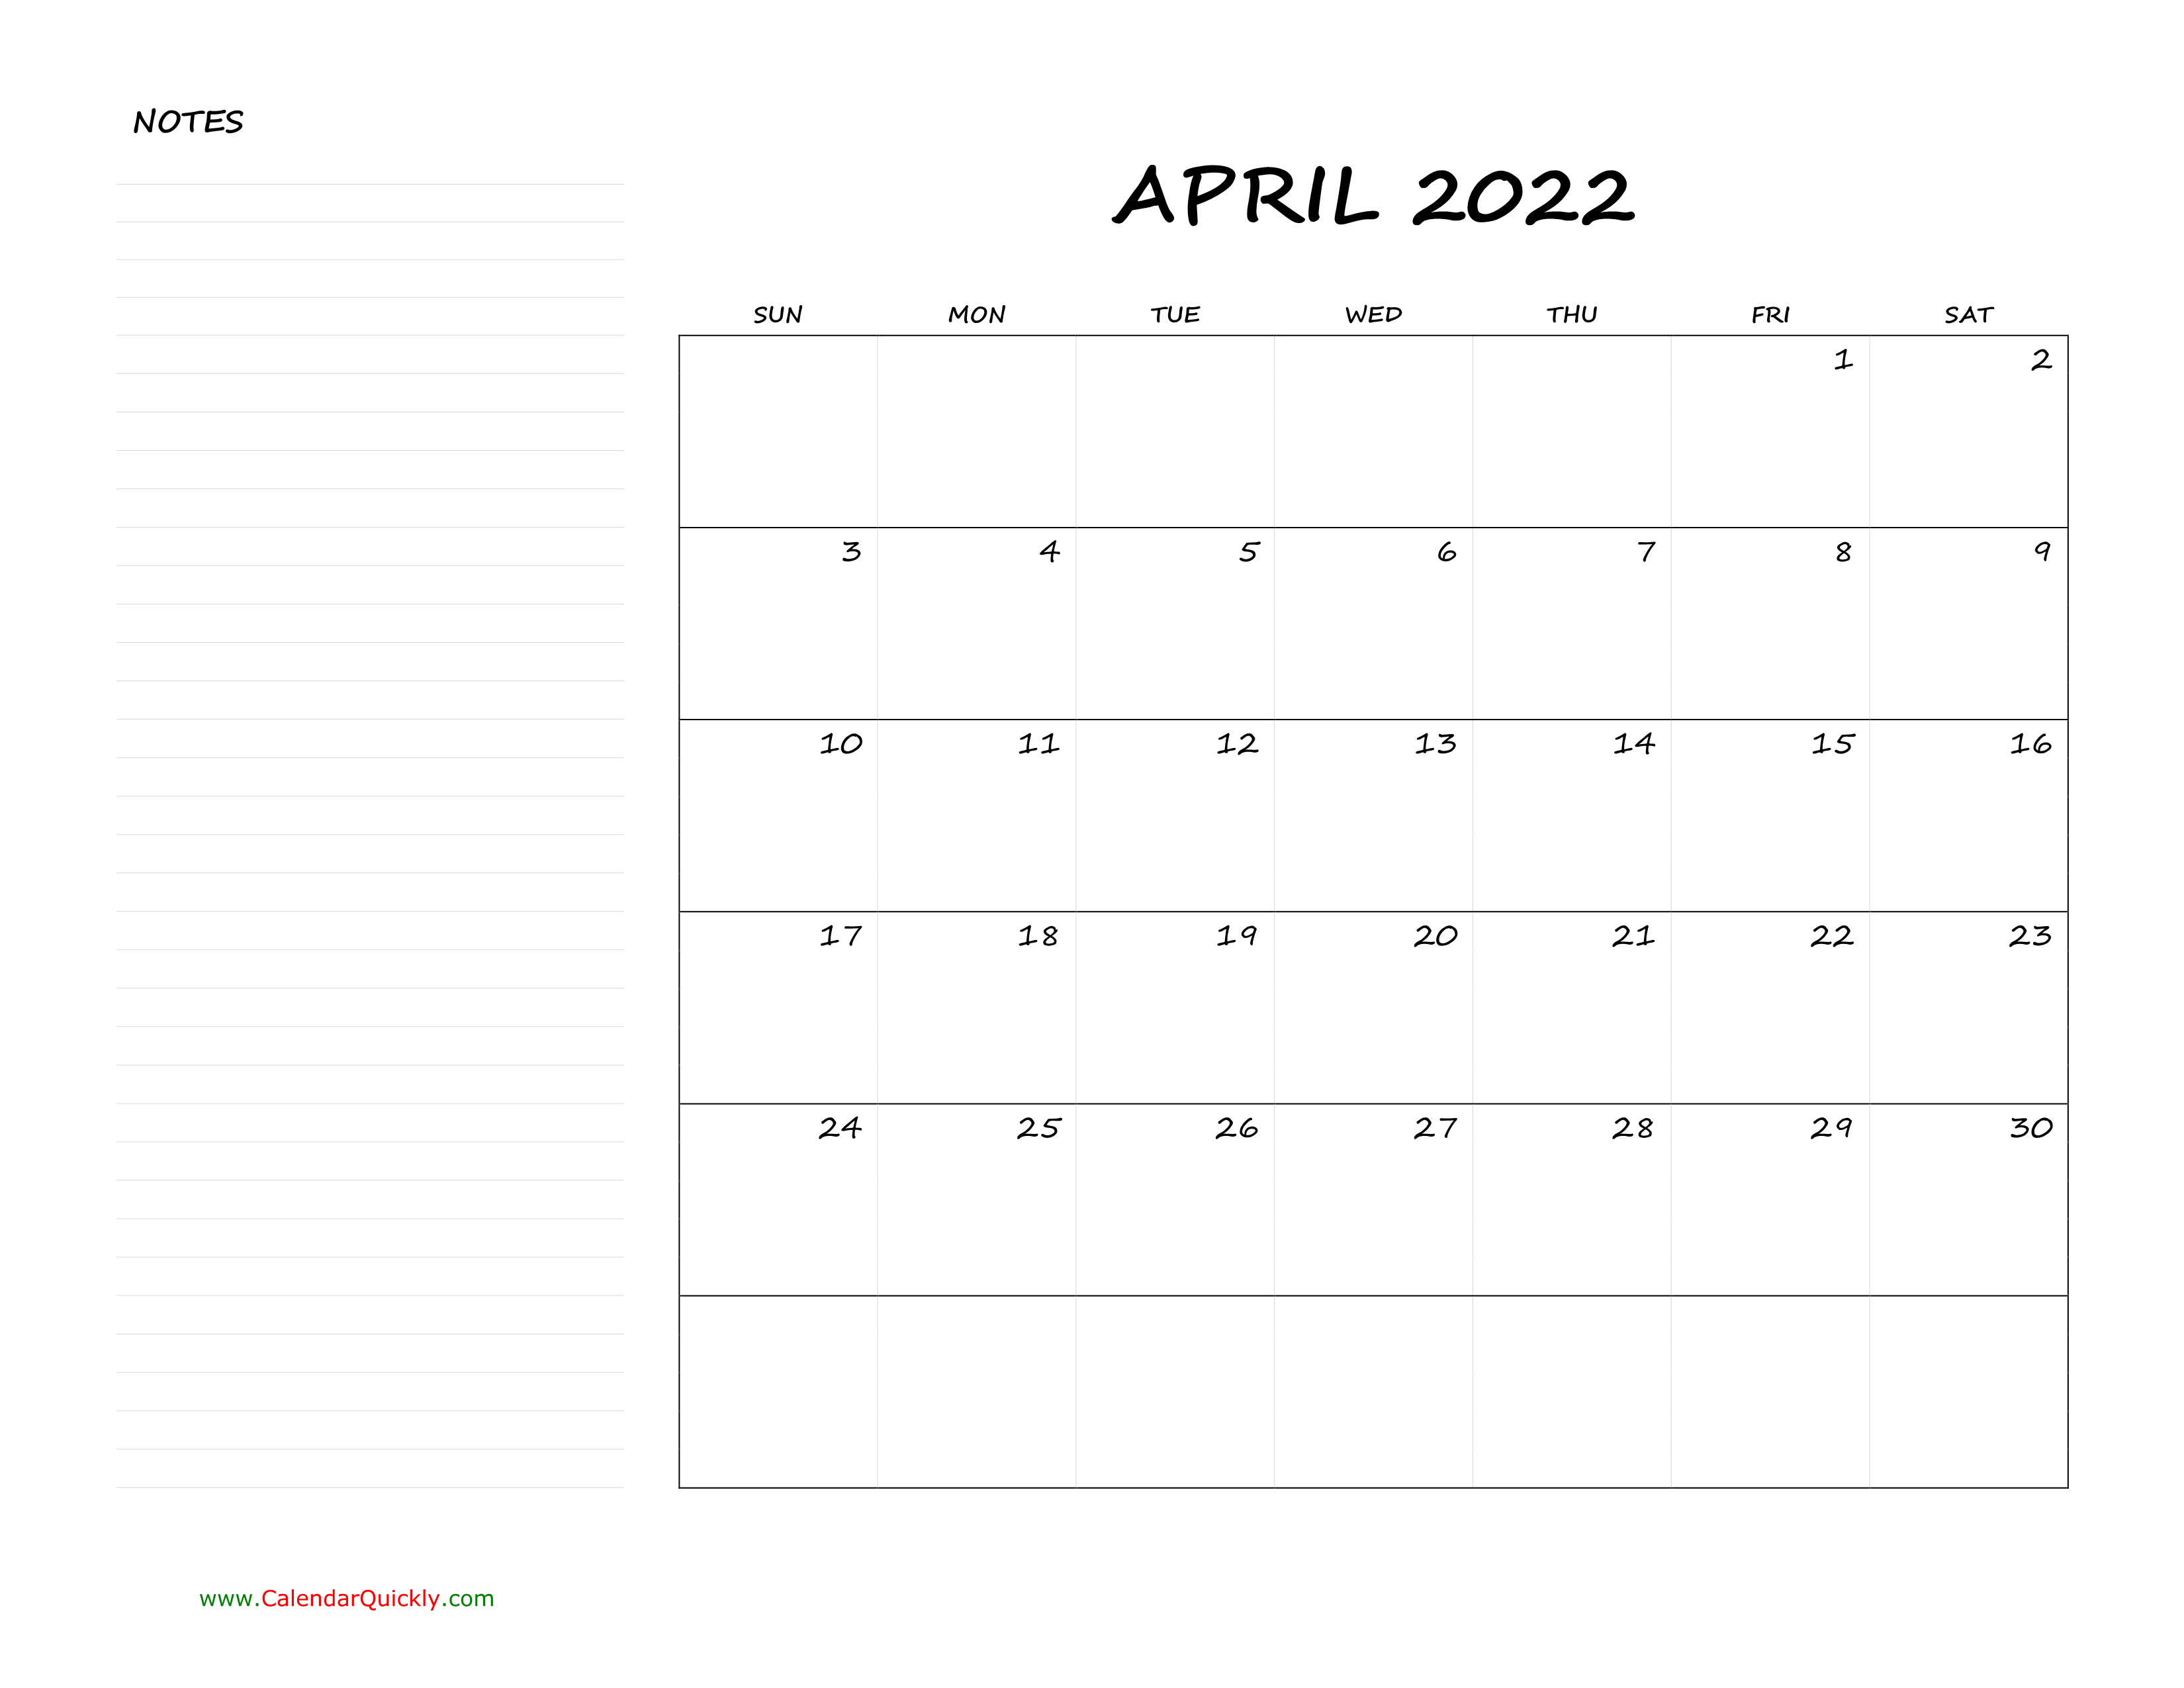 April Blank Calendar 2022 With Notes | Calendar Quickly For March April May 2022 Calendar Print